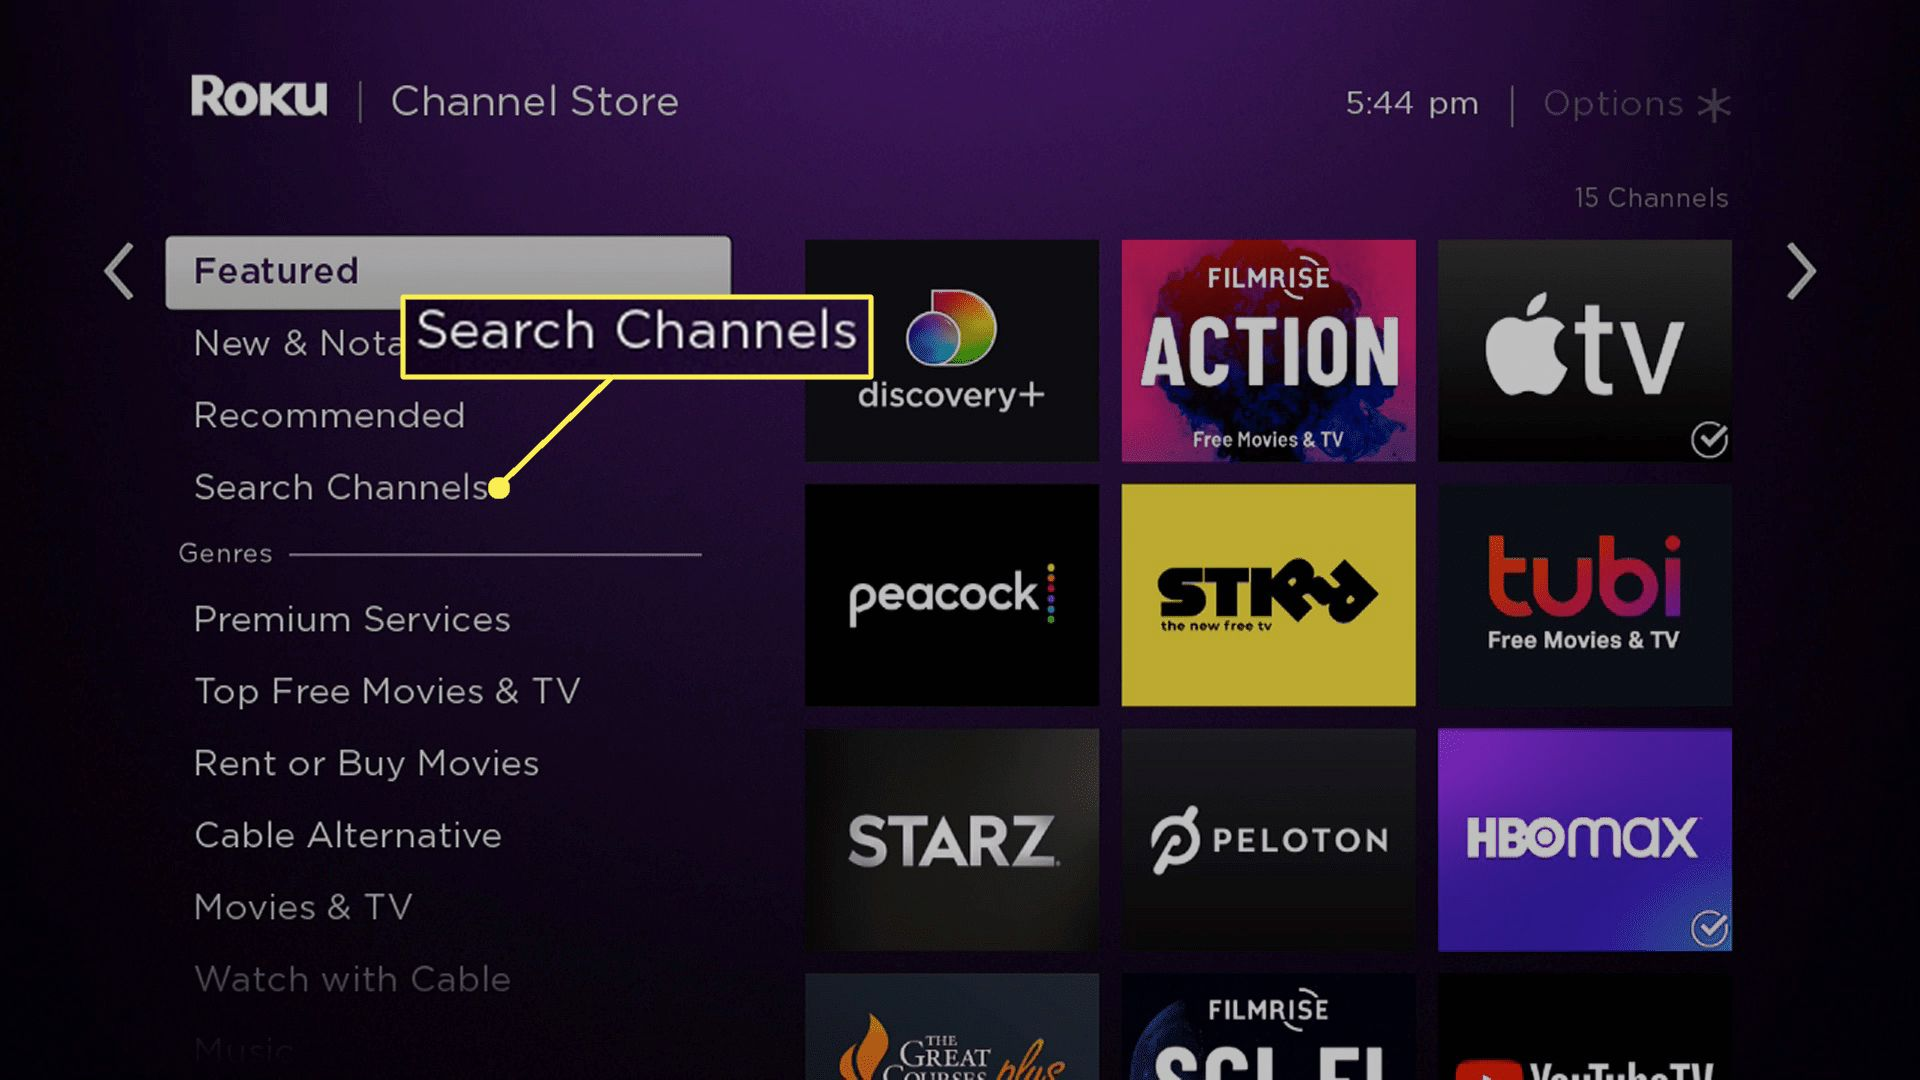 The Roku channel store with Search Channels highlighted.